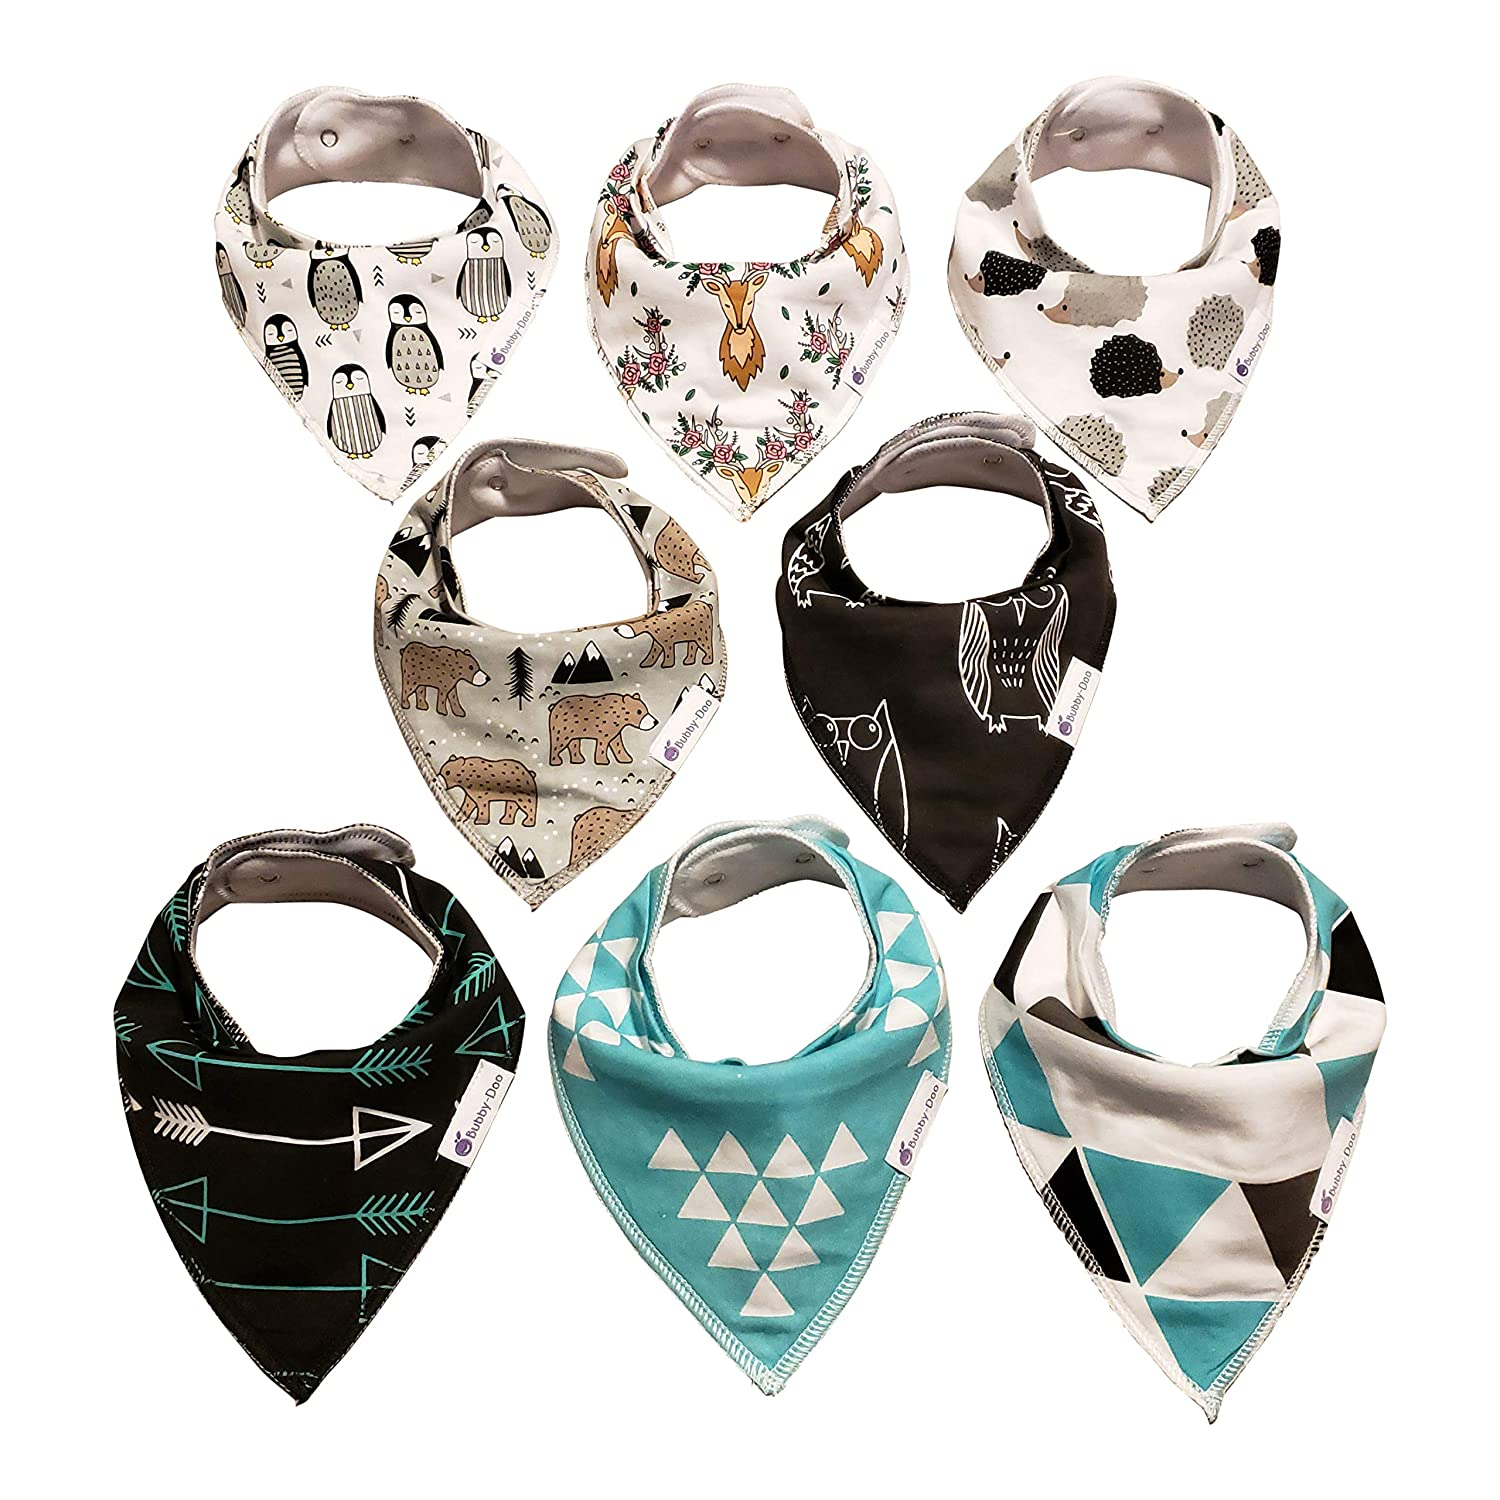 Baby Bandana Drool Bibs by Bubby-Doo Essentials - 100% Cotton for Newborn and Teething Babies or Toddlers - 8 Pack is Unisex for Boys or Girls - Premium Bib Set for Drooling - Neutral Fashion Design